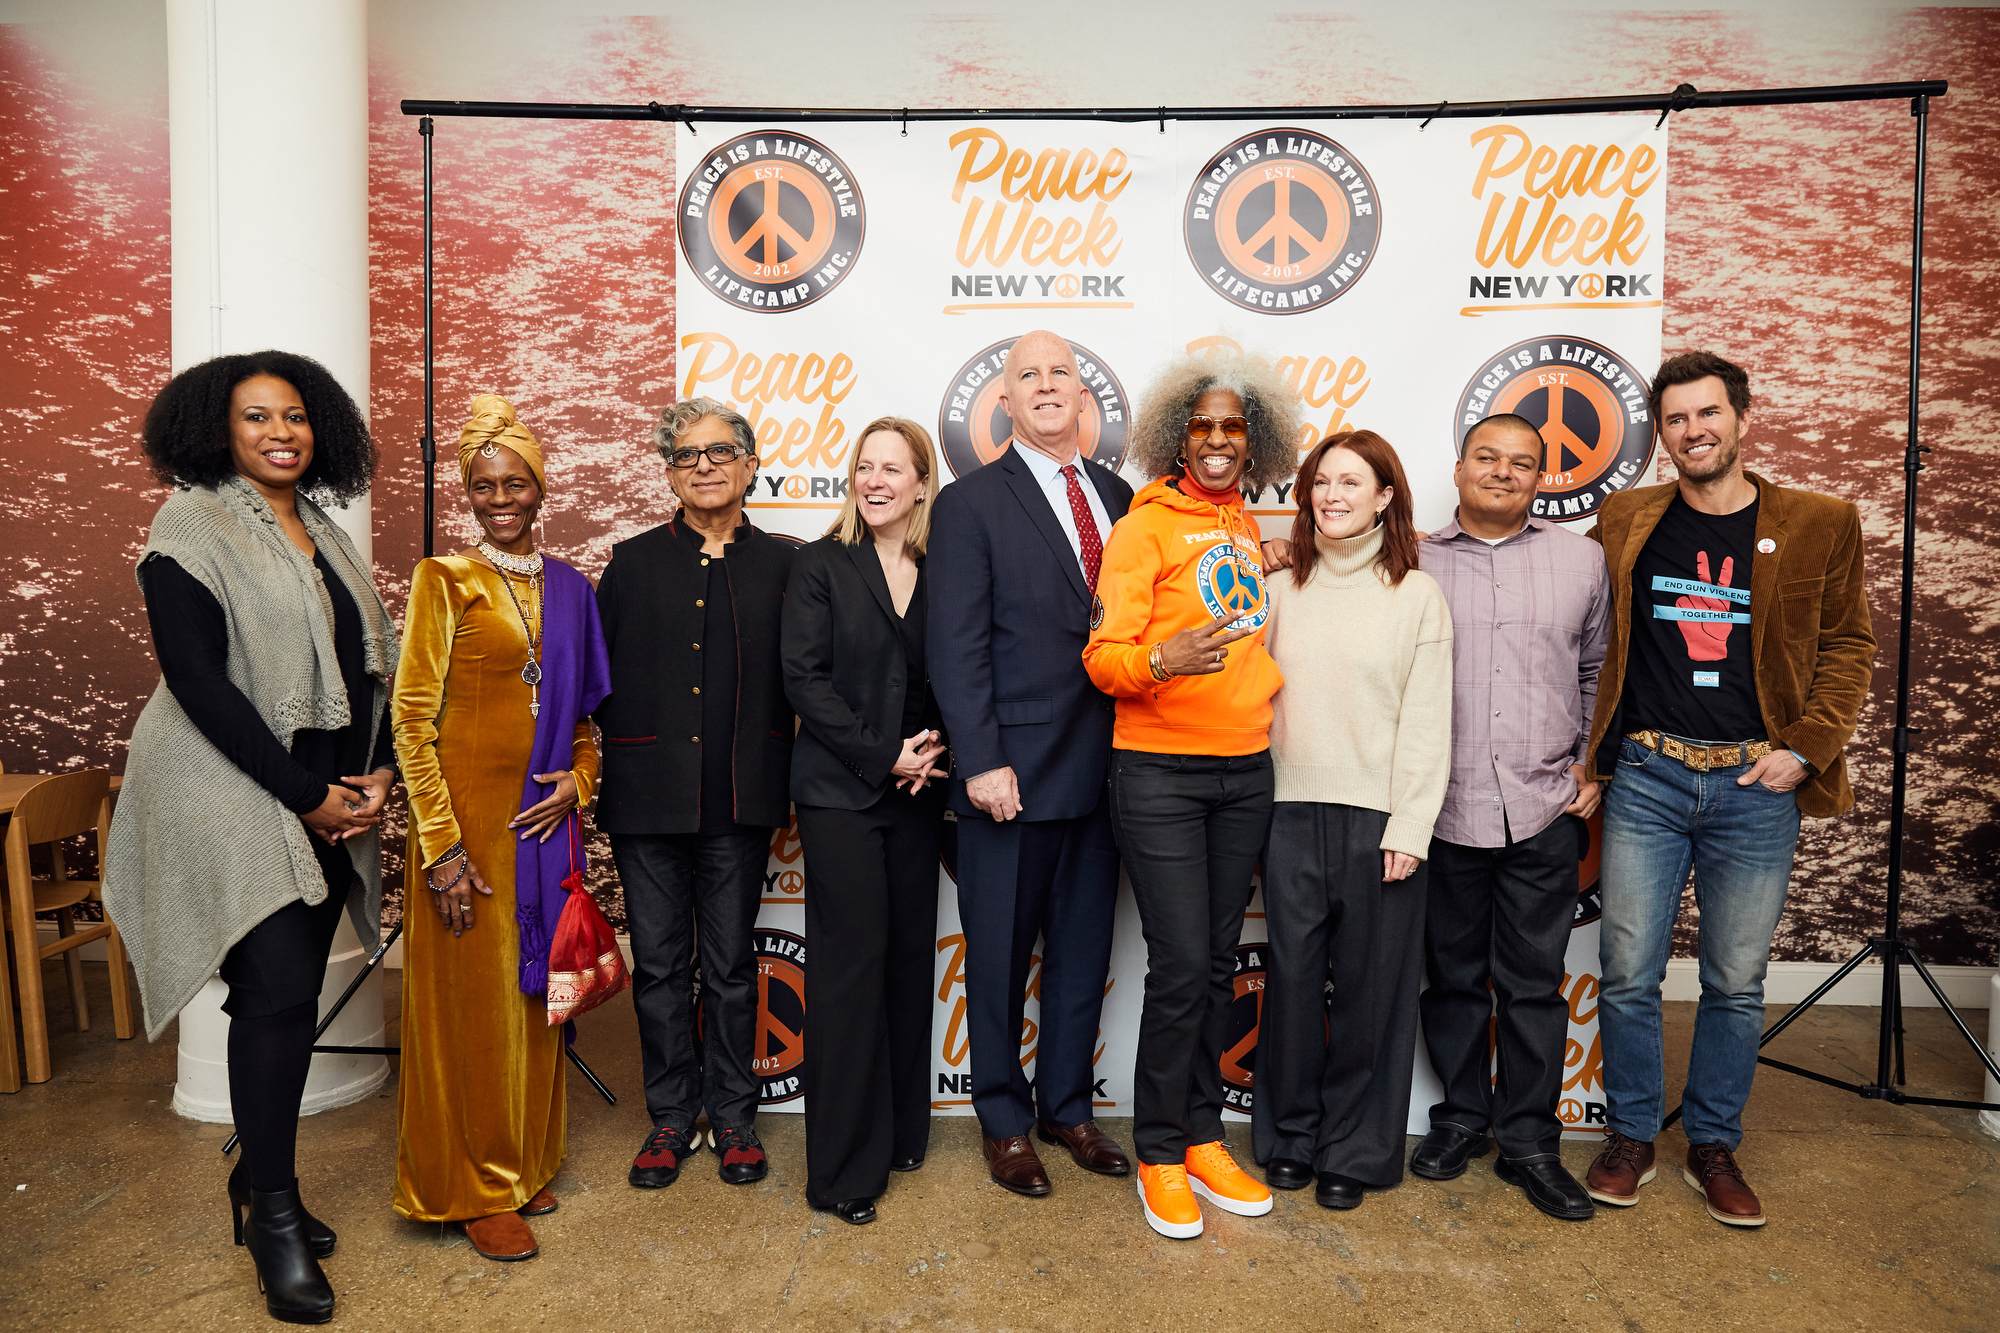 From left, Dr. Aletha Maybank, deputy commissioner of the New York City Department of Health and Mental Hygiene; wellness practitioner Queen Afua; best-selling author Deepak Chopra, Borough President Melinda Katz; NYPD Commissioner James O'Neill; Erica Ford of LIFE Camp, Inc; Academy Award-winning actress Julianne Moore; Hector Verdugo, the associate executive director at HomeBoy Industries and co-chair of the National Black & Brown Gun Violence Prevention Consortium; and Blake Mycoskie, CEO of TOMS Shoes. Photo courtesy of Borough Hall.